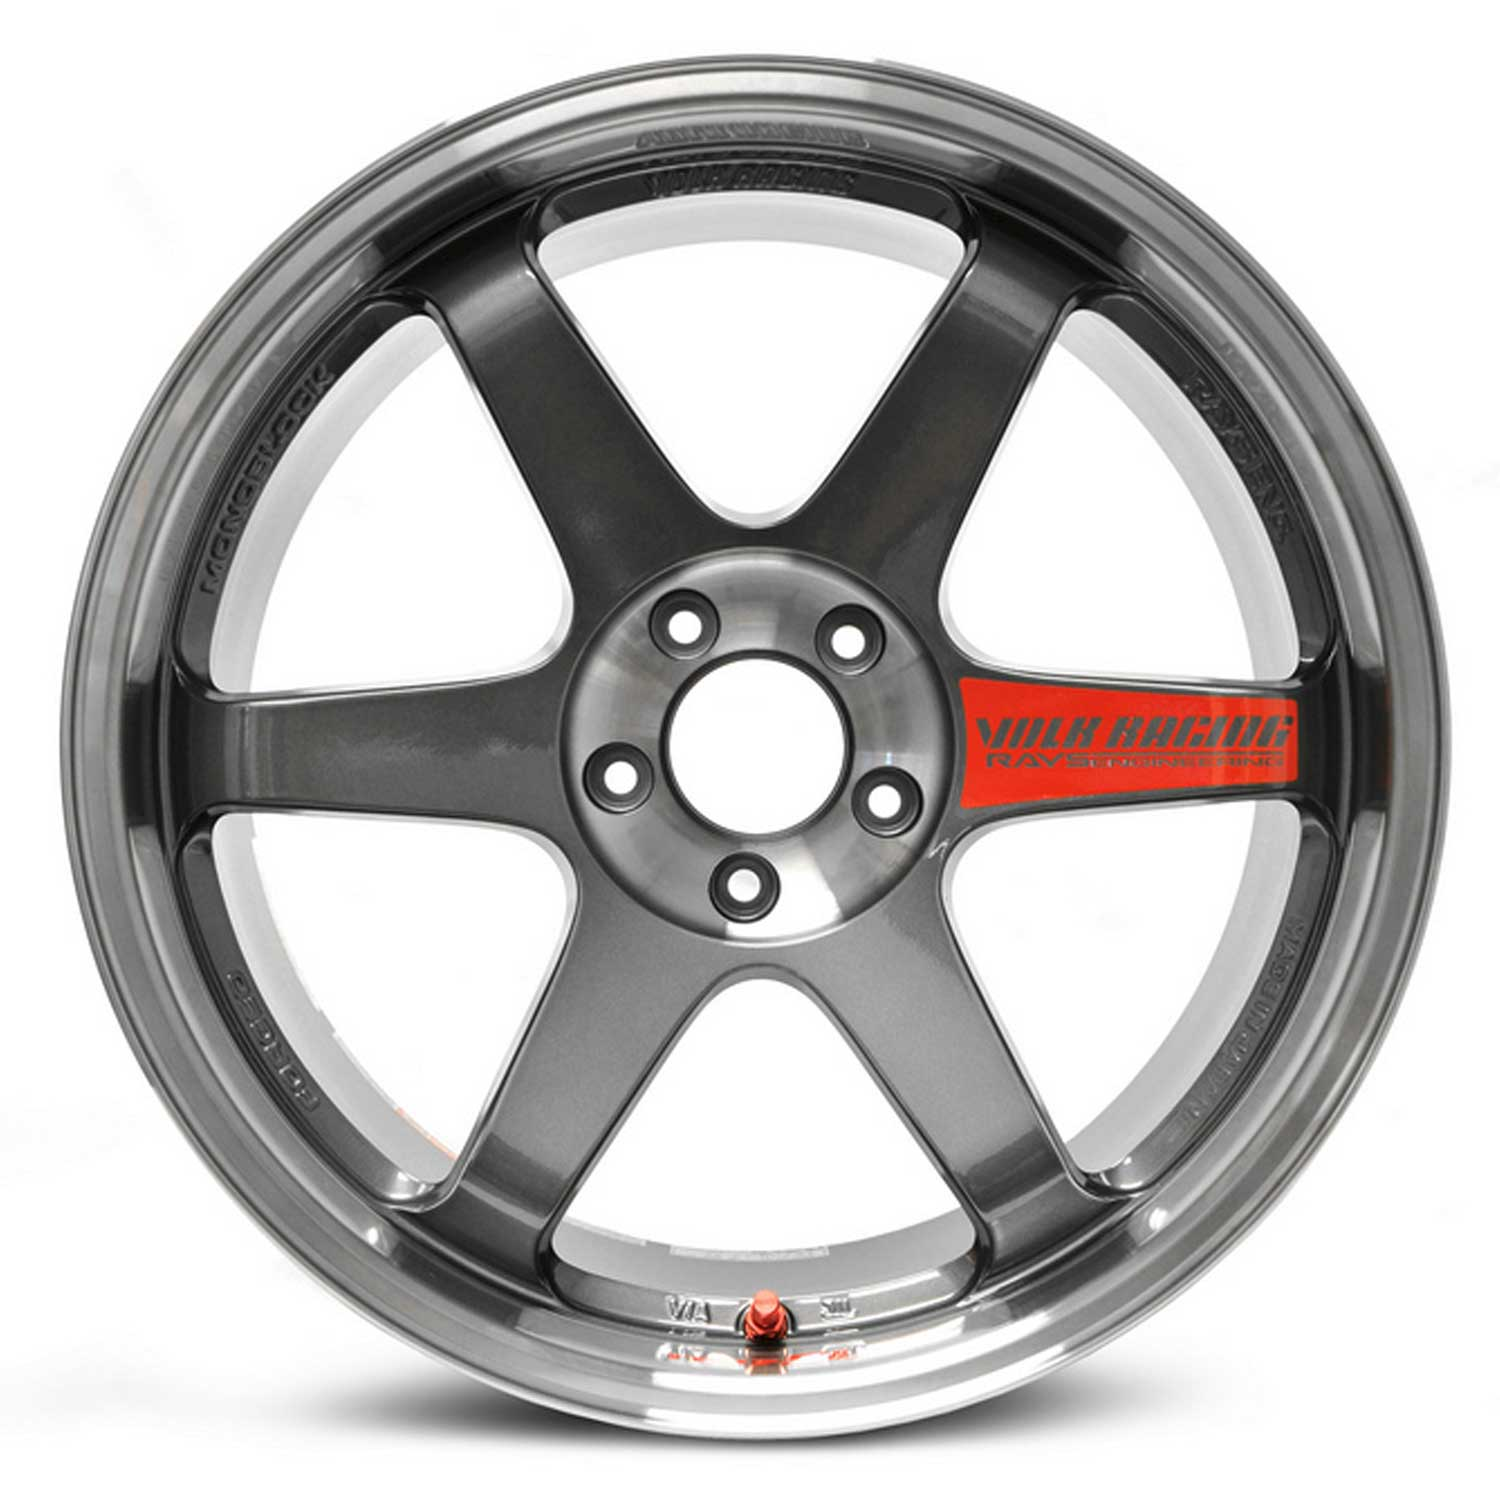 MAPerformance - Volk Racing TE37 Super Lap